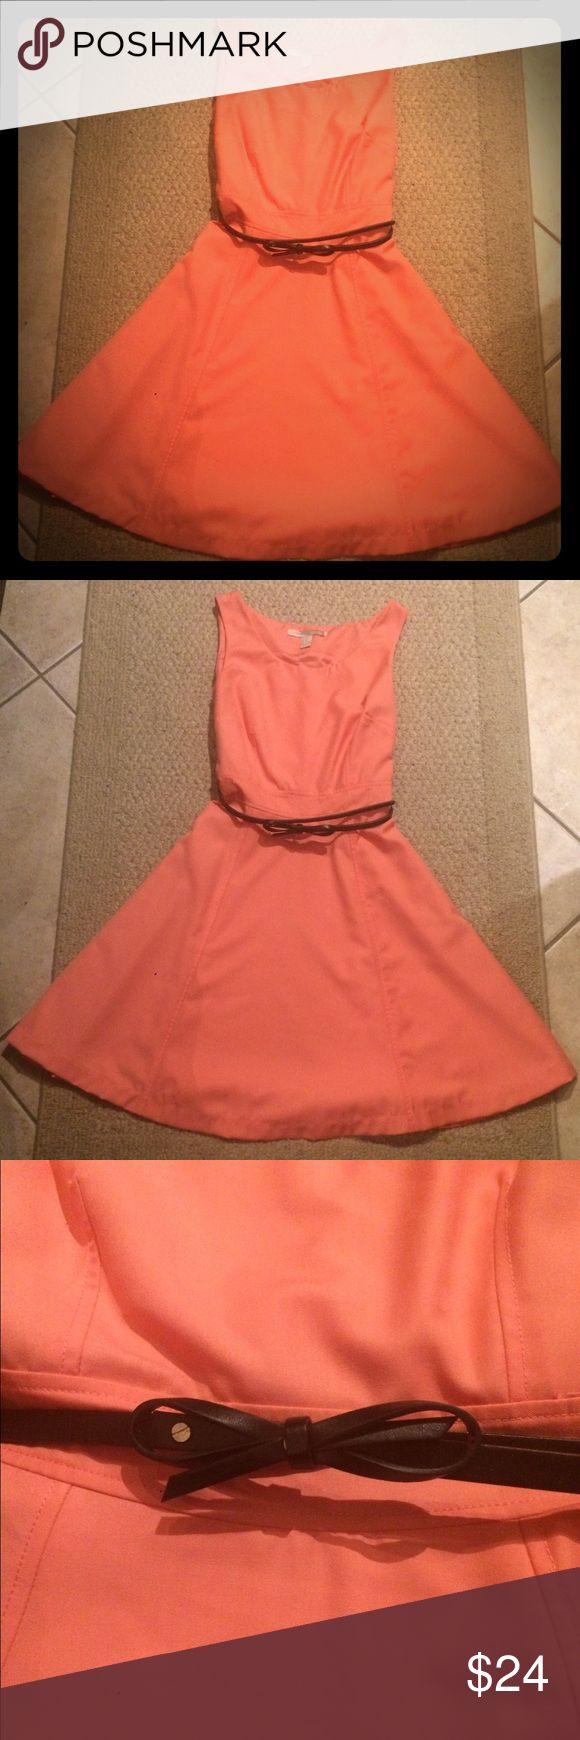 HOST PICK🍁Salmon colored forever 21dress🍁 Worn once super cute has old fashion flare   The belt comes with the dress :-) 👗 Follow me on twitter Bo0bi3 to see all my new listings on multiple sites! Forever 21 Dresses Midi